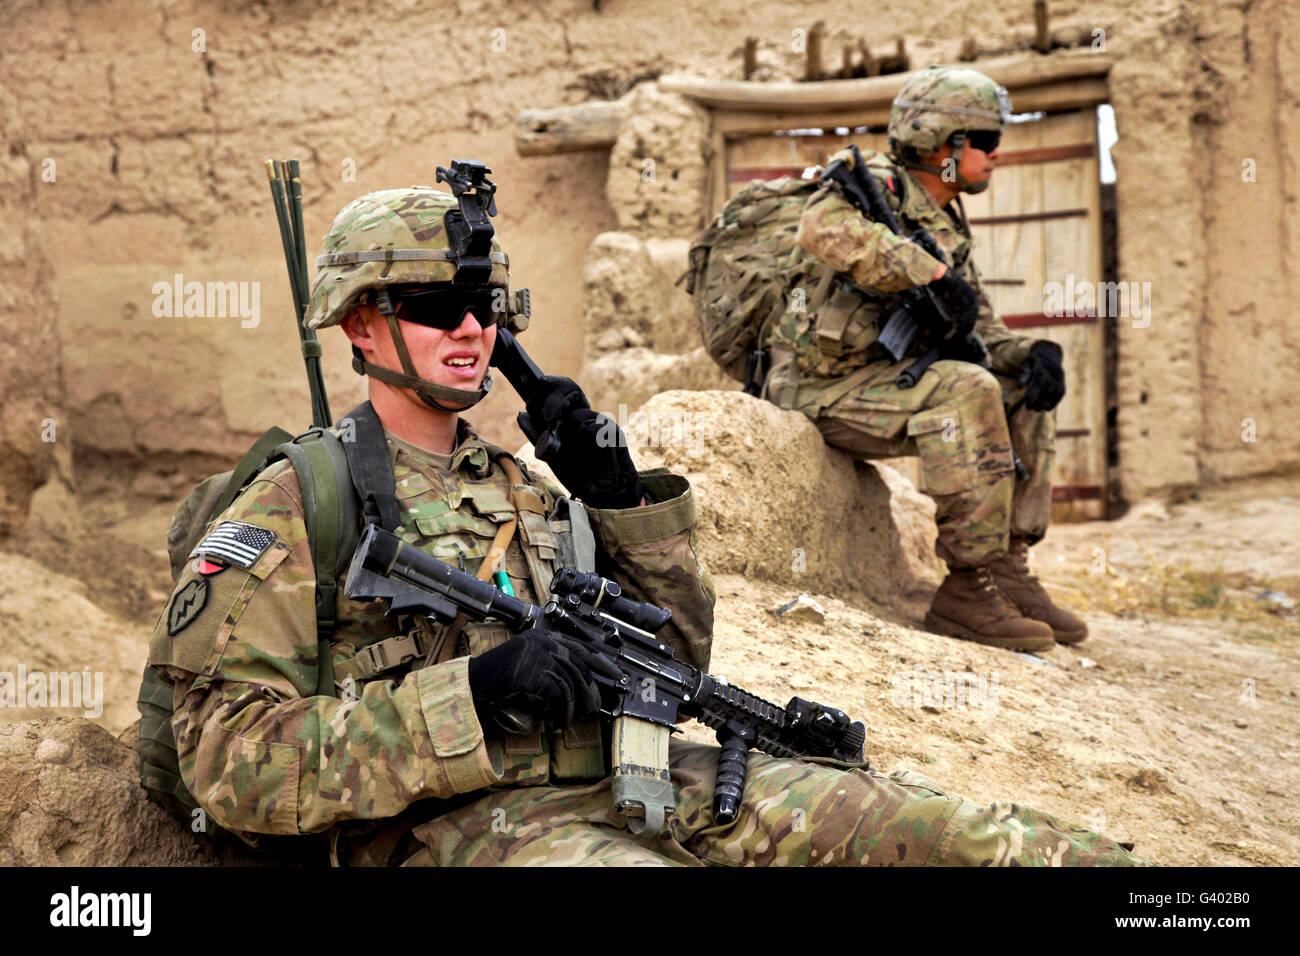 A soldier calls in description of person of interest to higher ups. - Stock Image